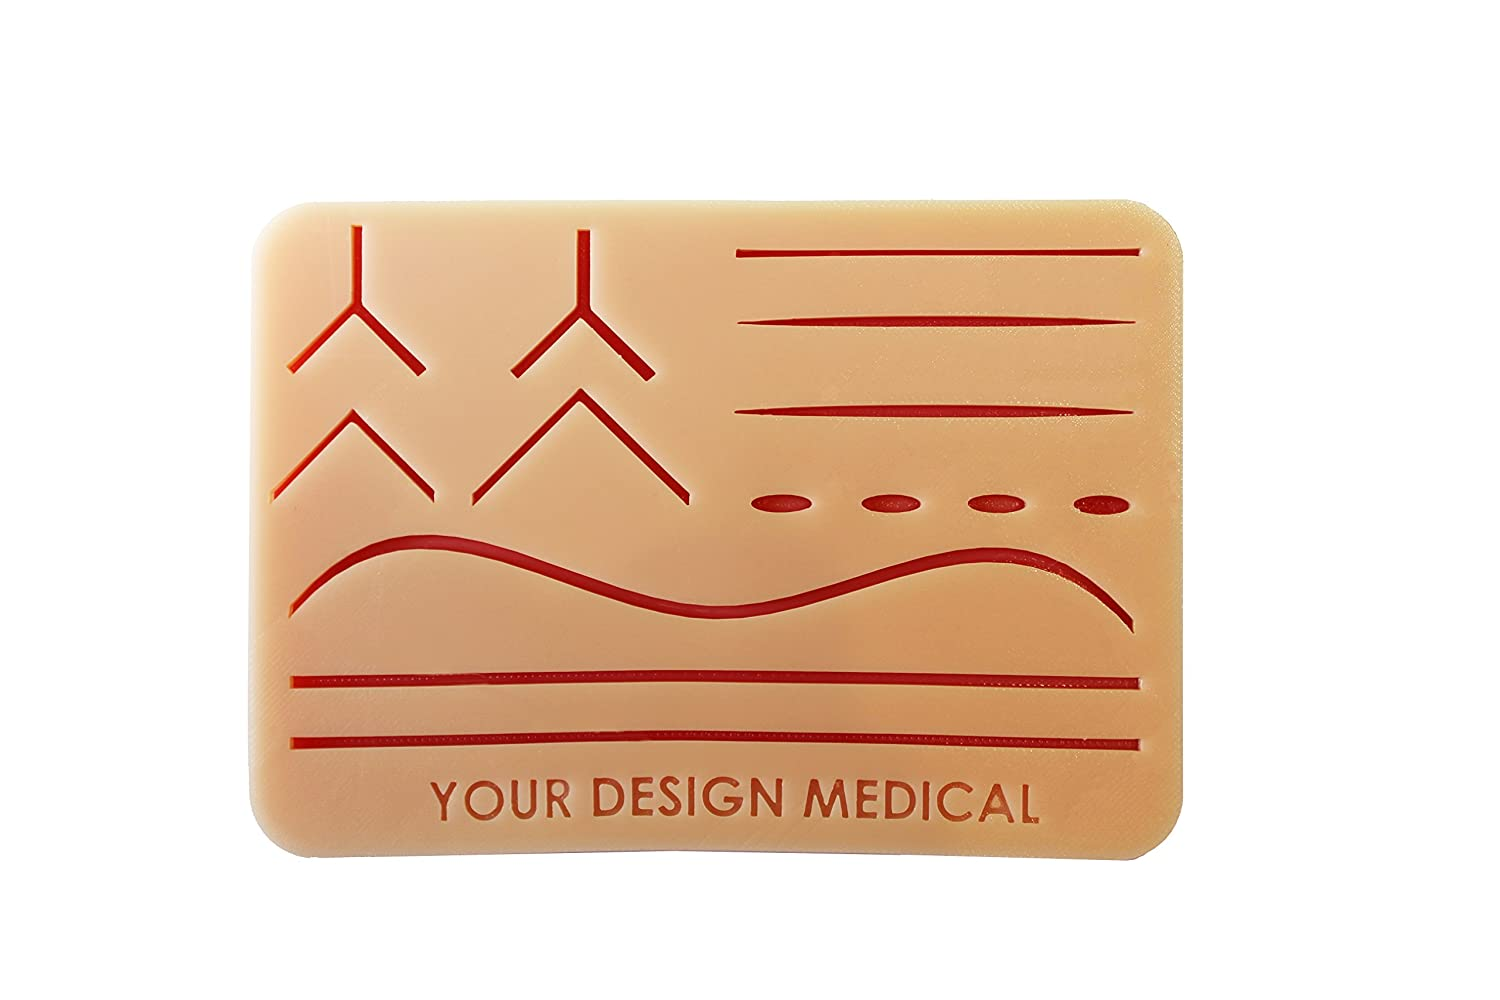 Large 3-Layer Suture Pad with Wounds (7' x 5' - Light Skin) - The Original! Free Videos and Instruction Card! Often Imitated, Never Replicated. Beware Knock Offs! - Made in The USA!